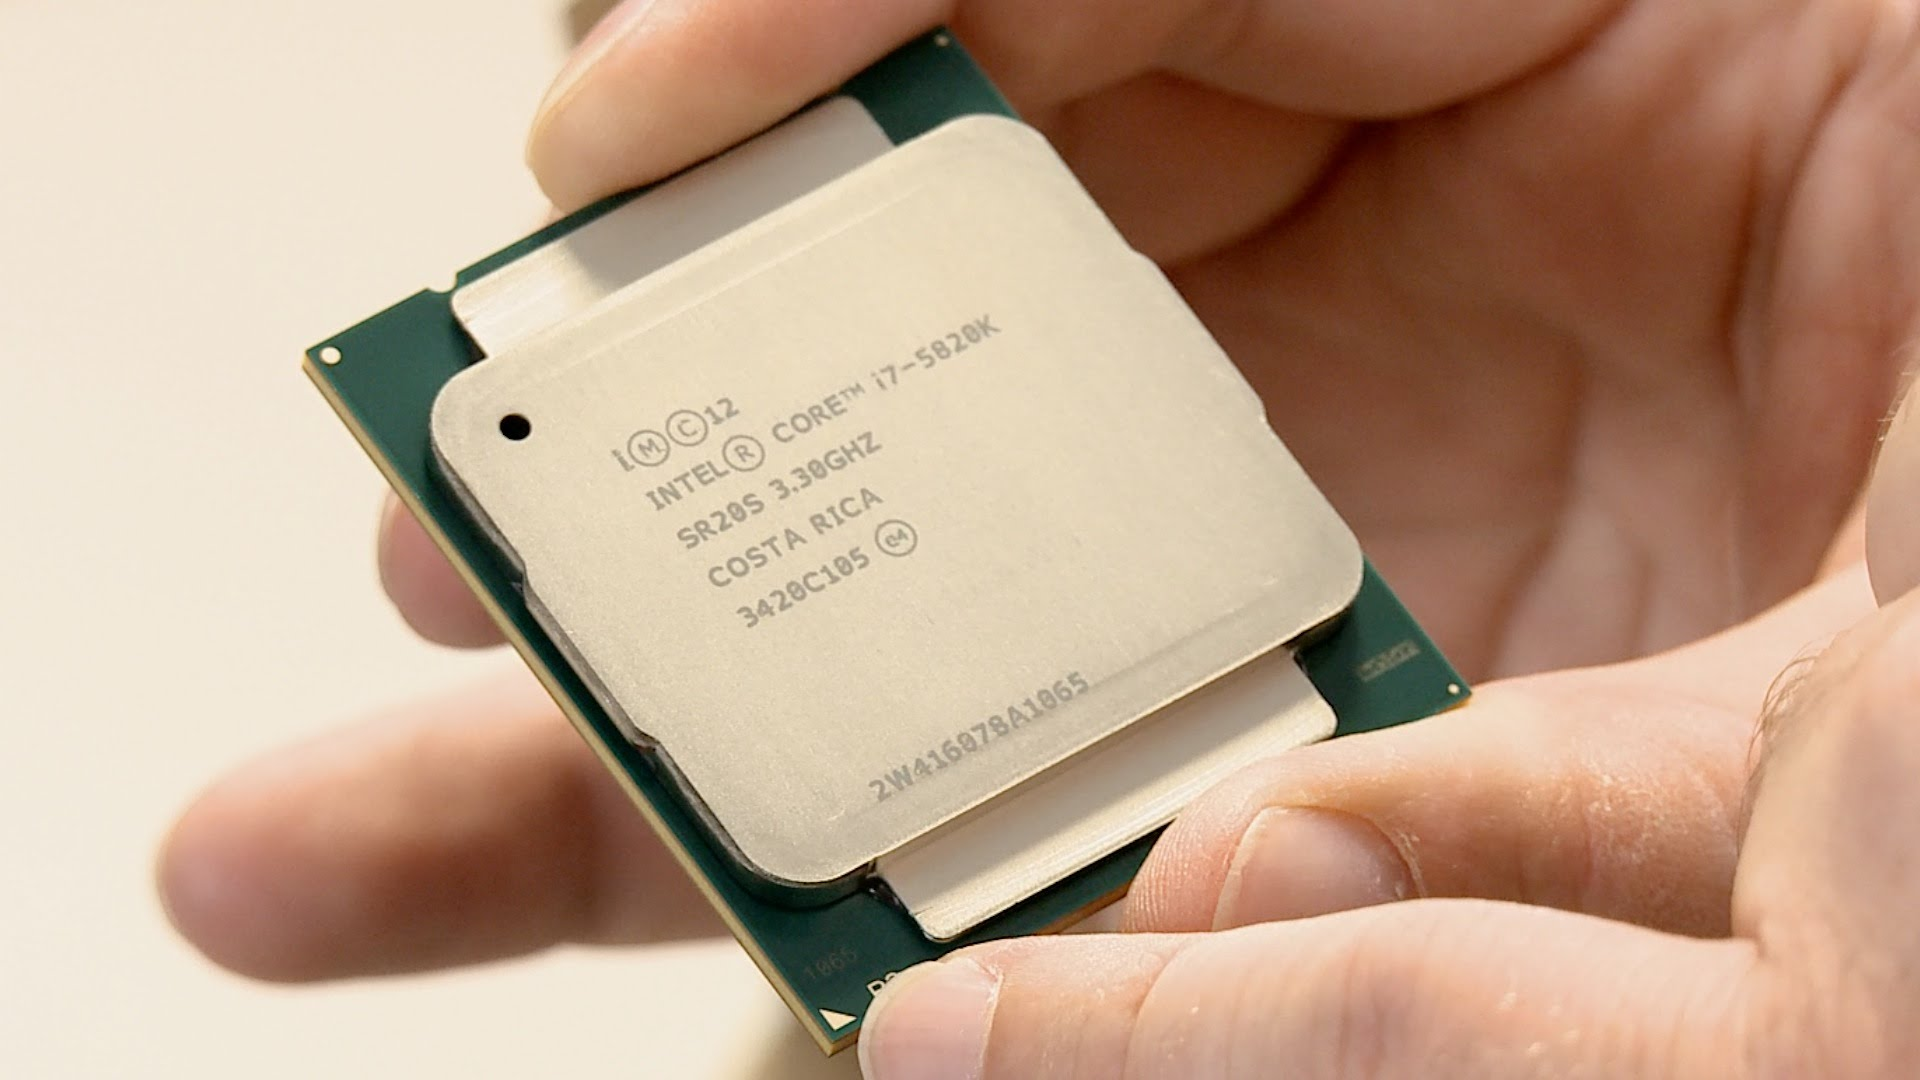 Intel Core i7 6700k is faster than 6 core i7 5820K in gaming 1920x1080